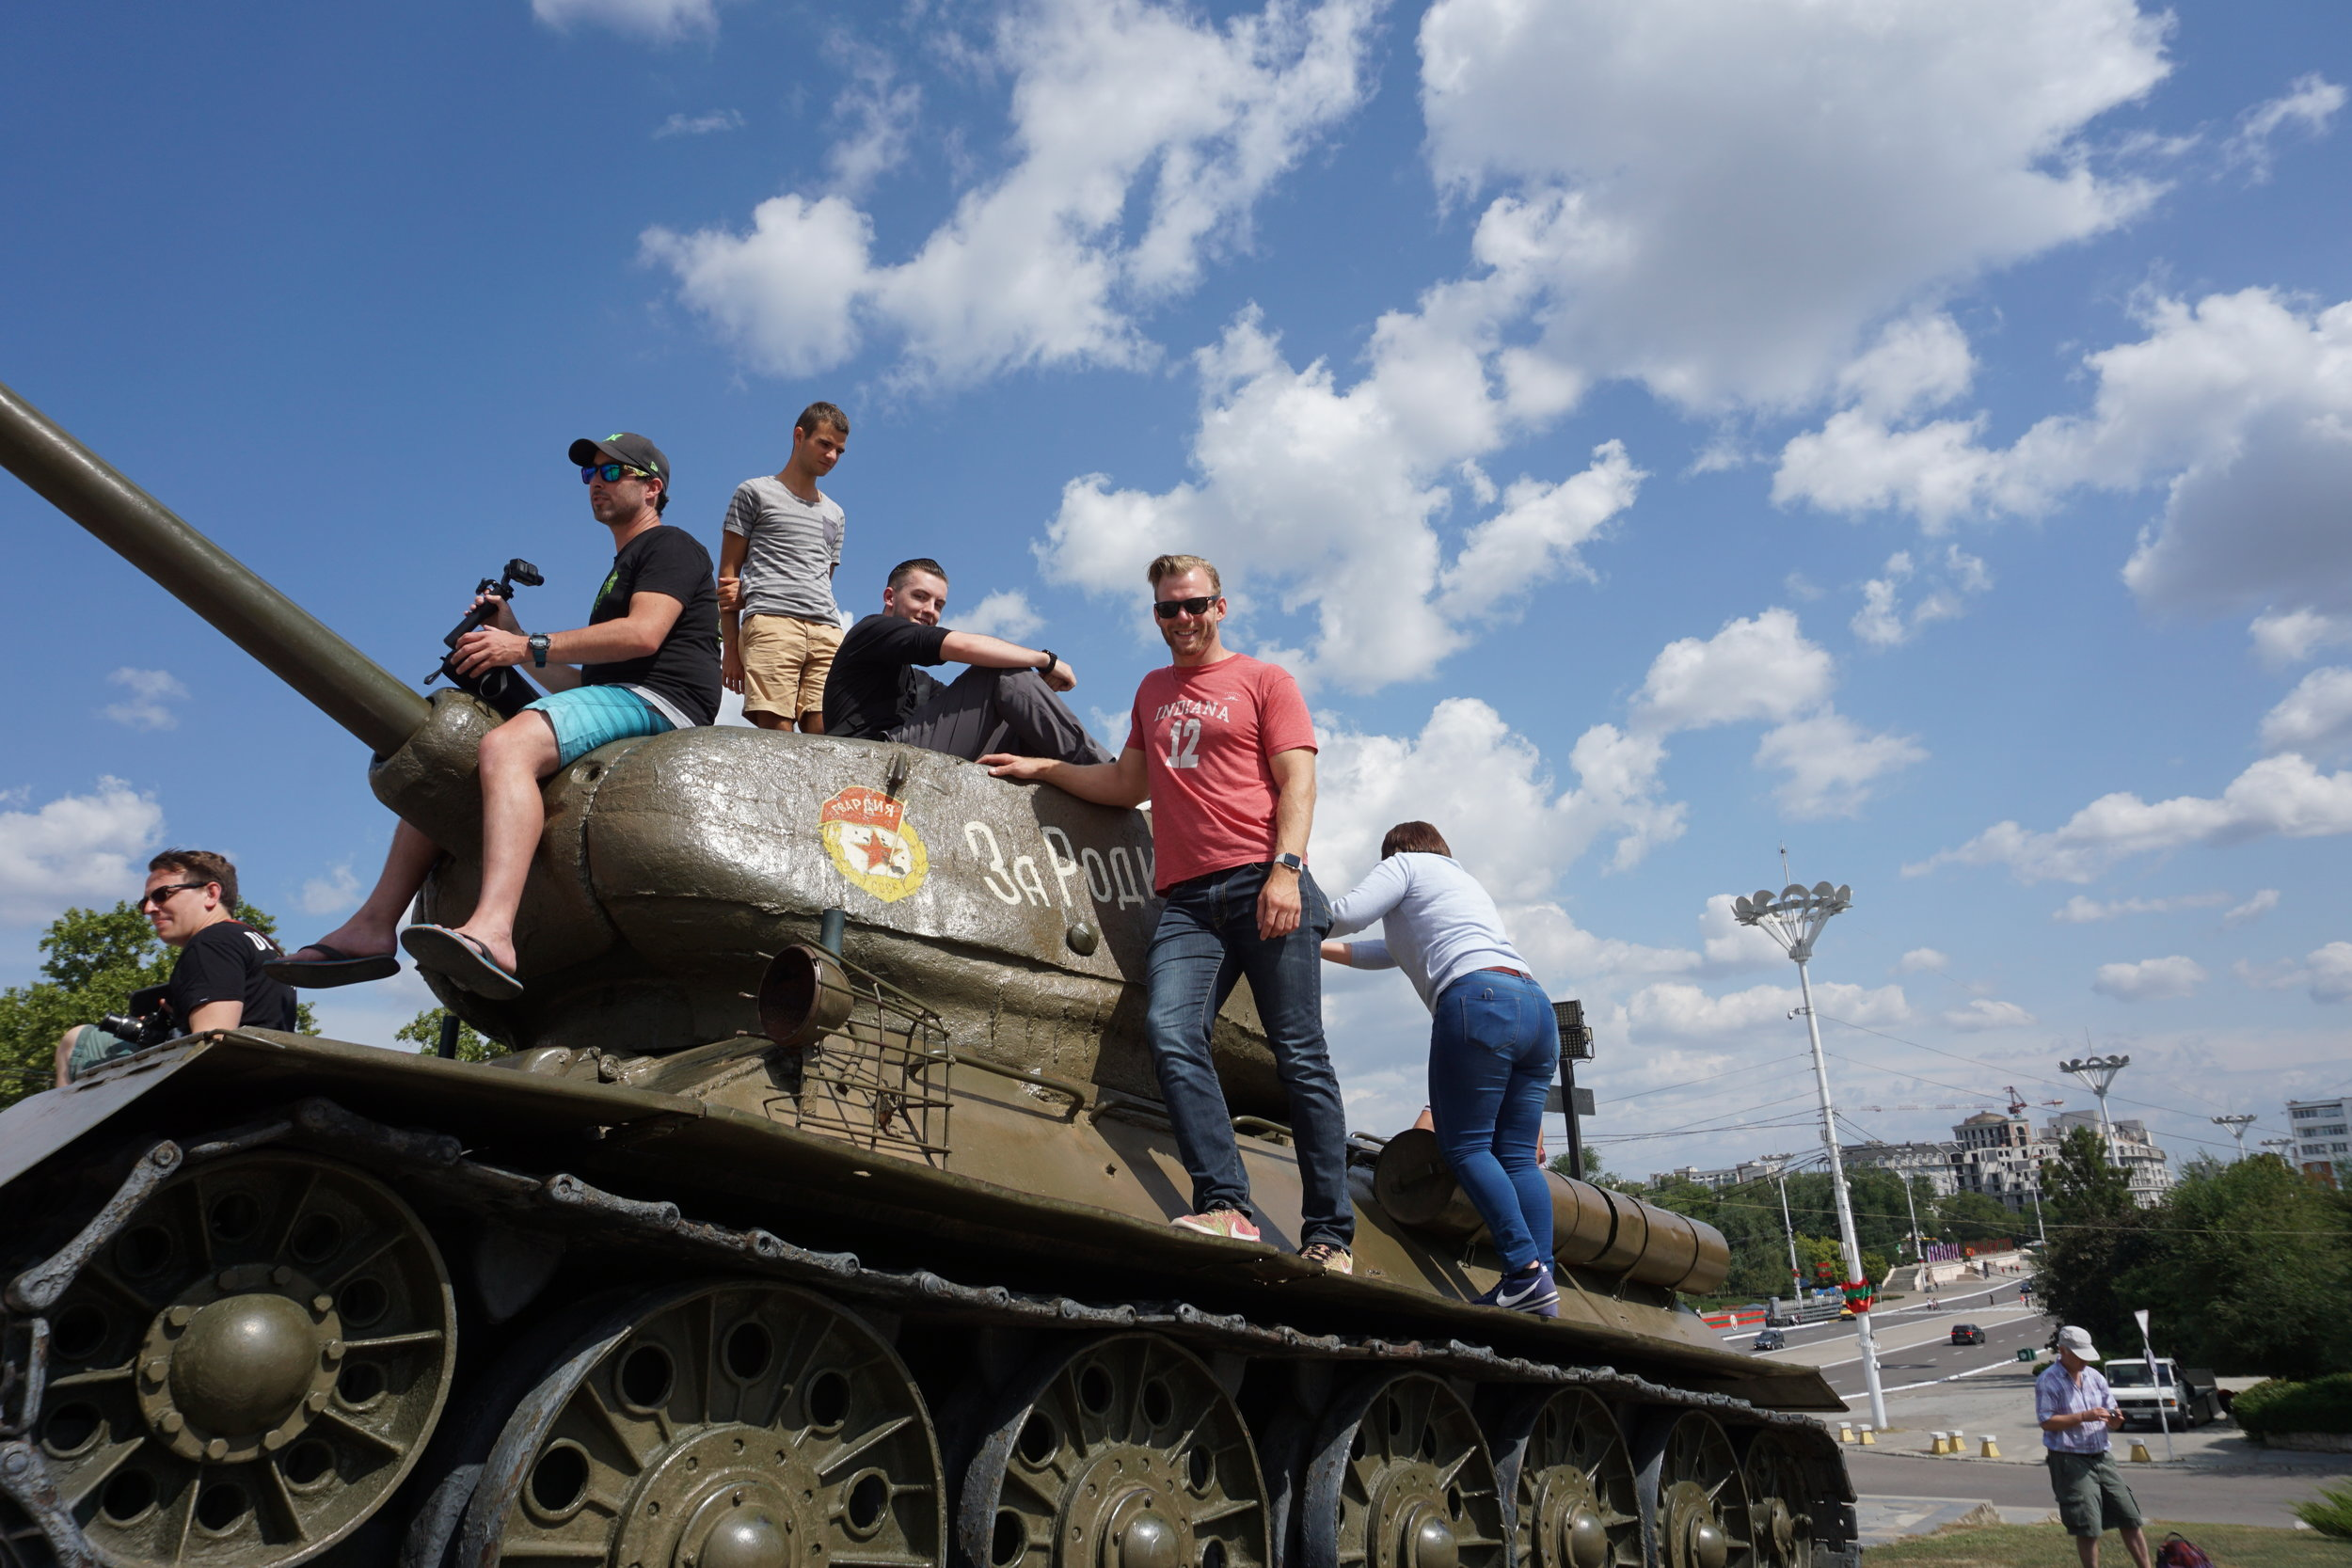 From tank admirer to tour guide: the natural progression